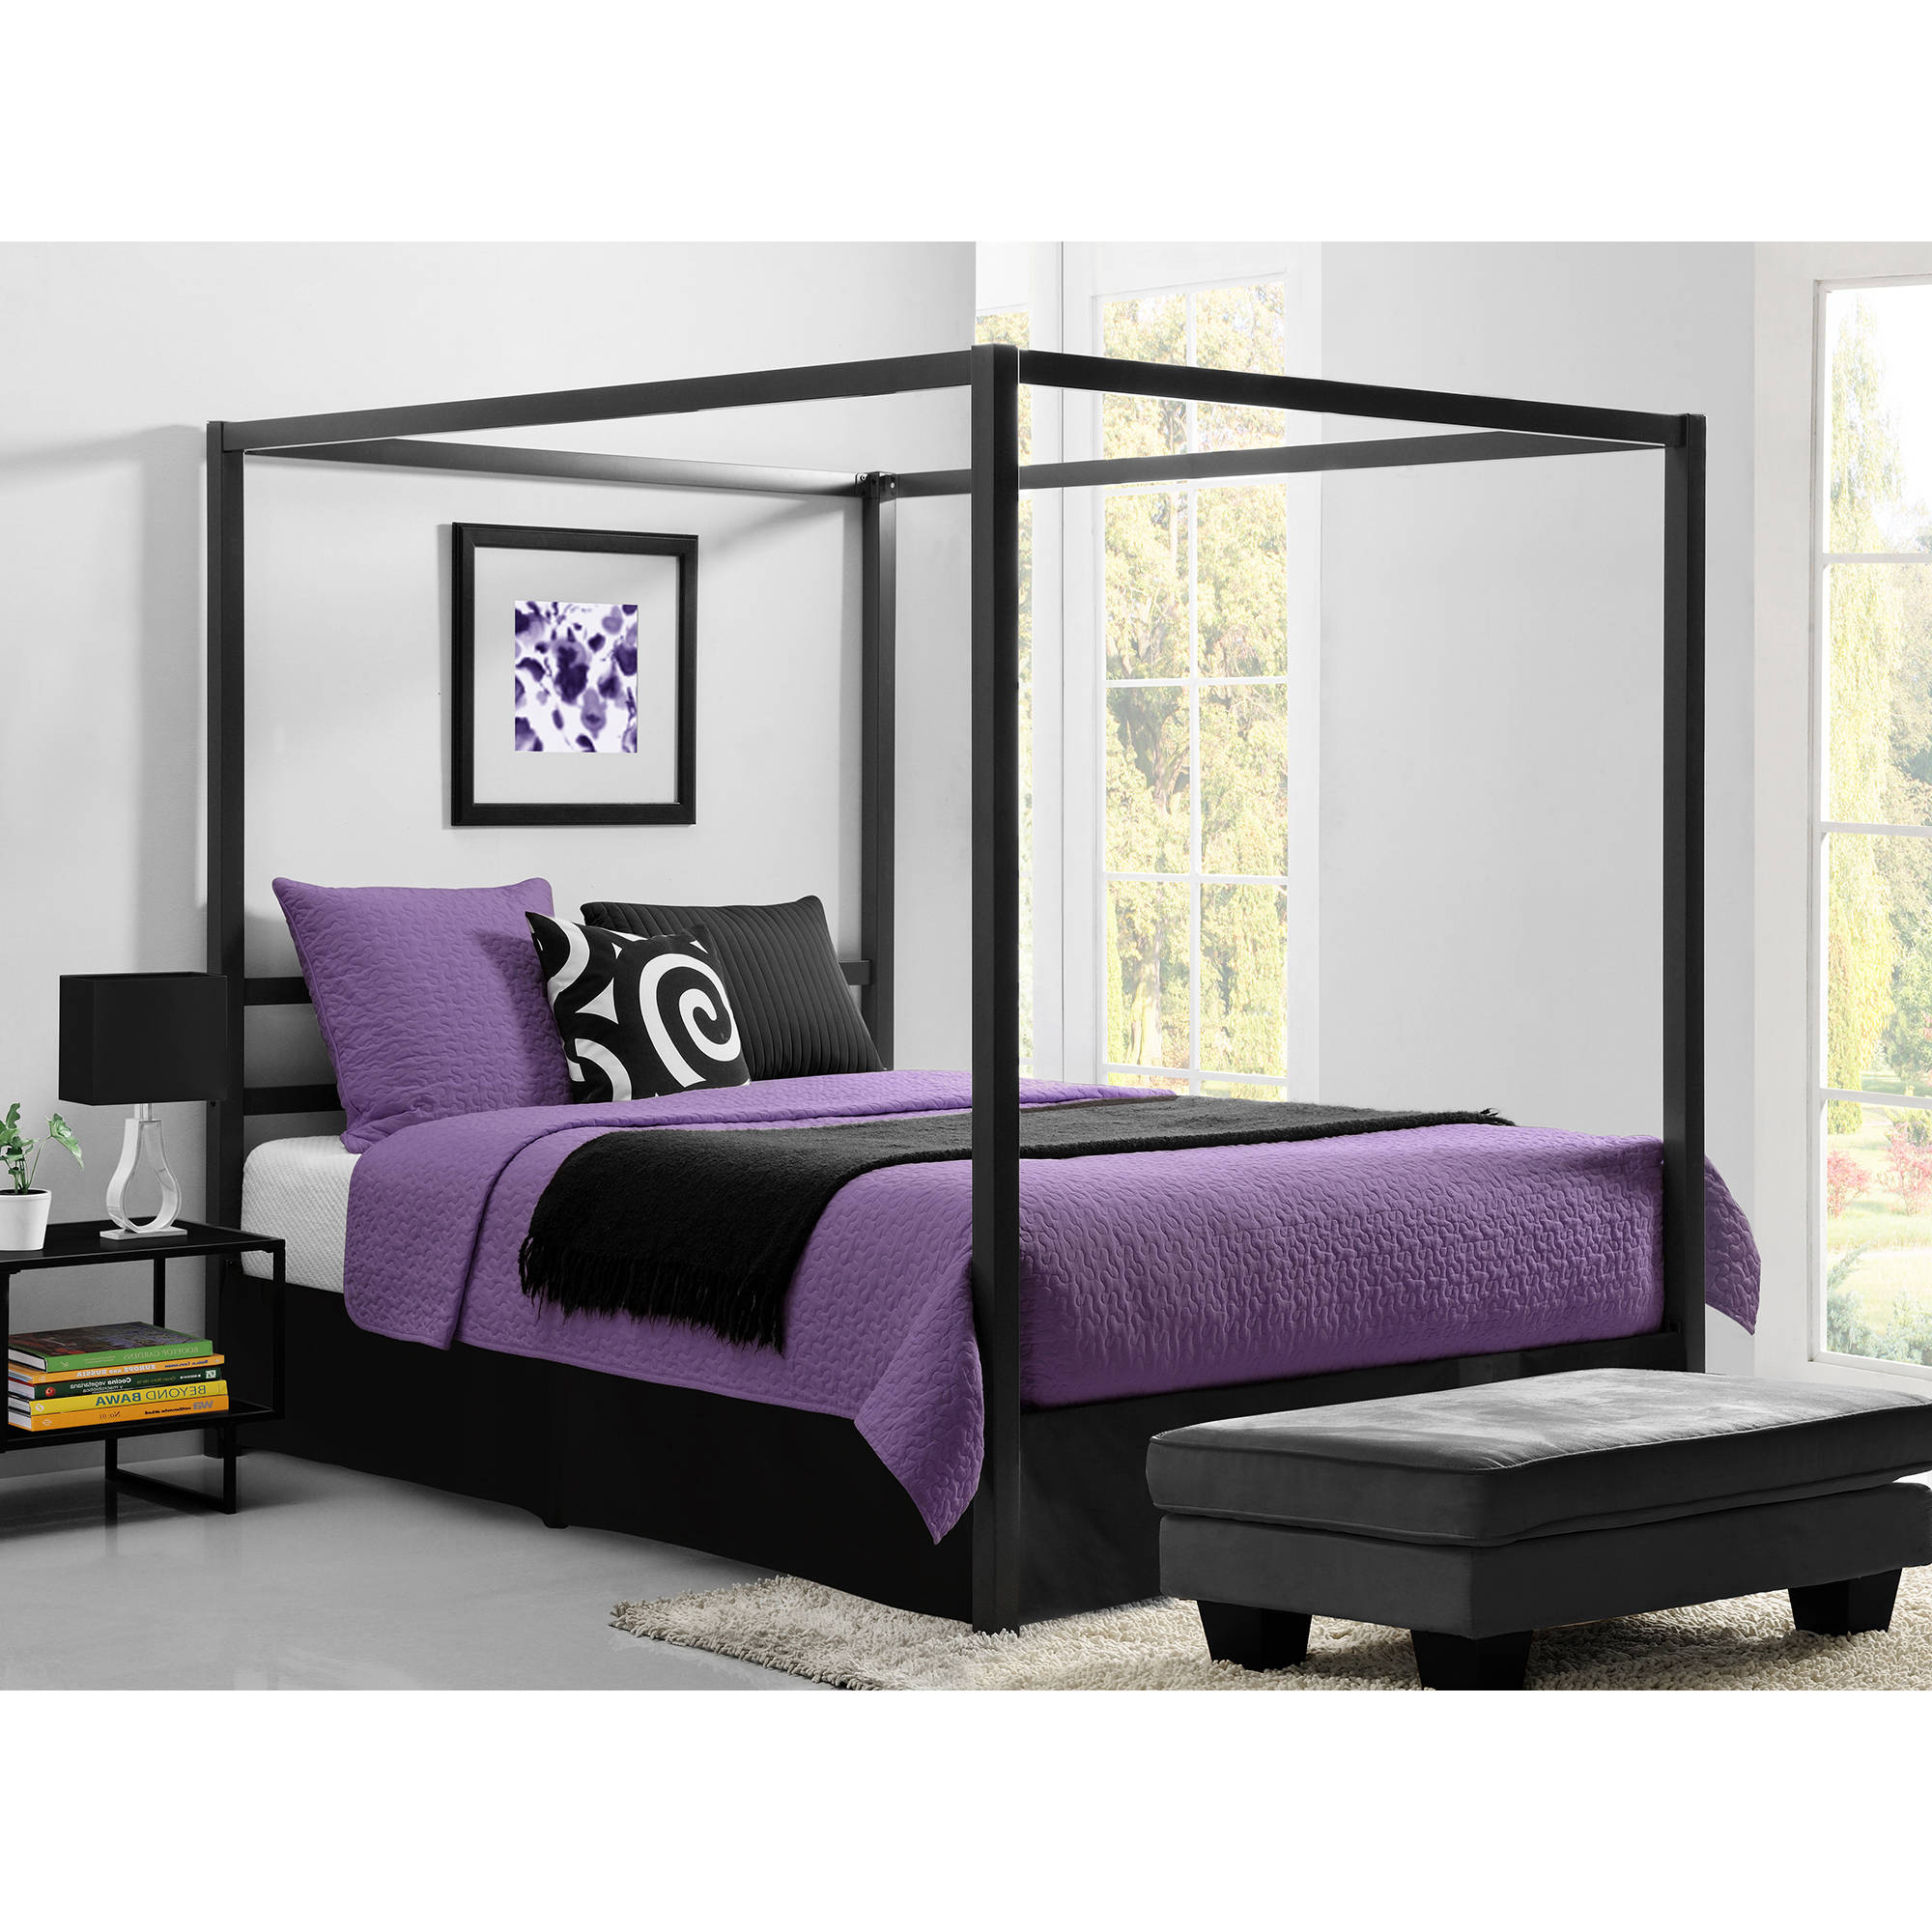 modern canopy queen metal bed multiple colors walmartcom - Iron Canopy Bed Frame